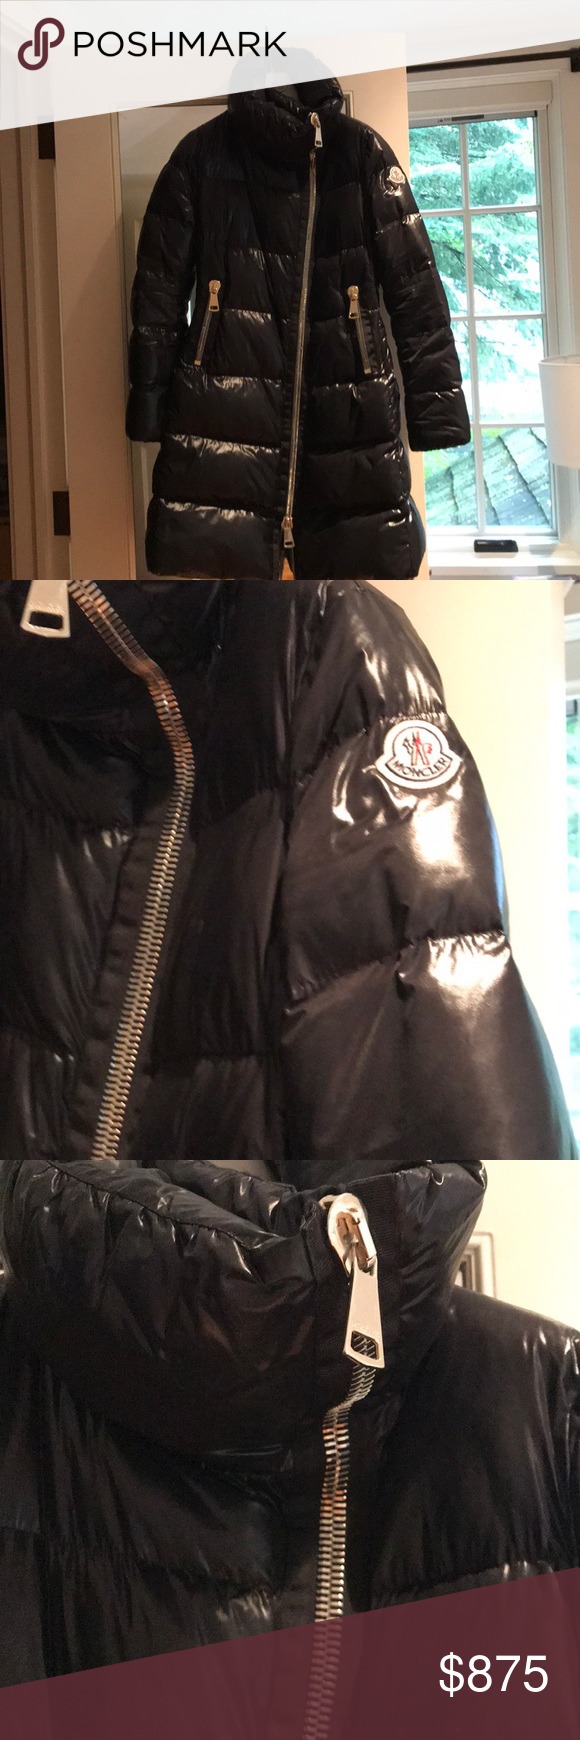 Moncler Joinville Asymmetric Puffer Jacket Sz 1 This Is A Size 1 Long Down Jacket In Shiny Black The Zipper Is A Statement Wi Jackets Moncler Clothes Design [ 1740 x 580 Pixel ]